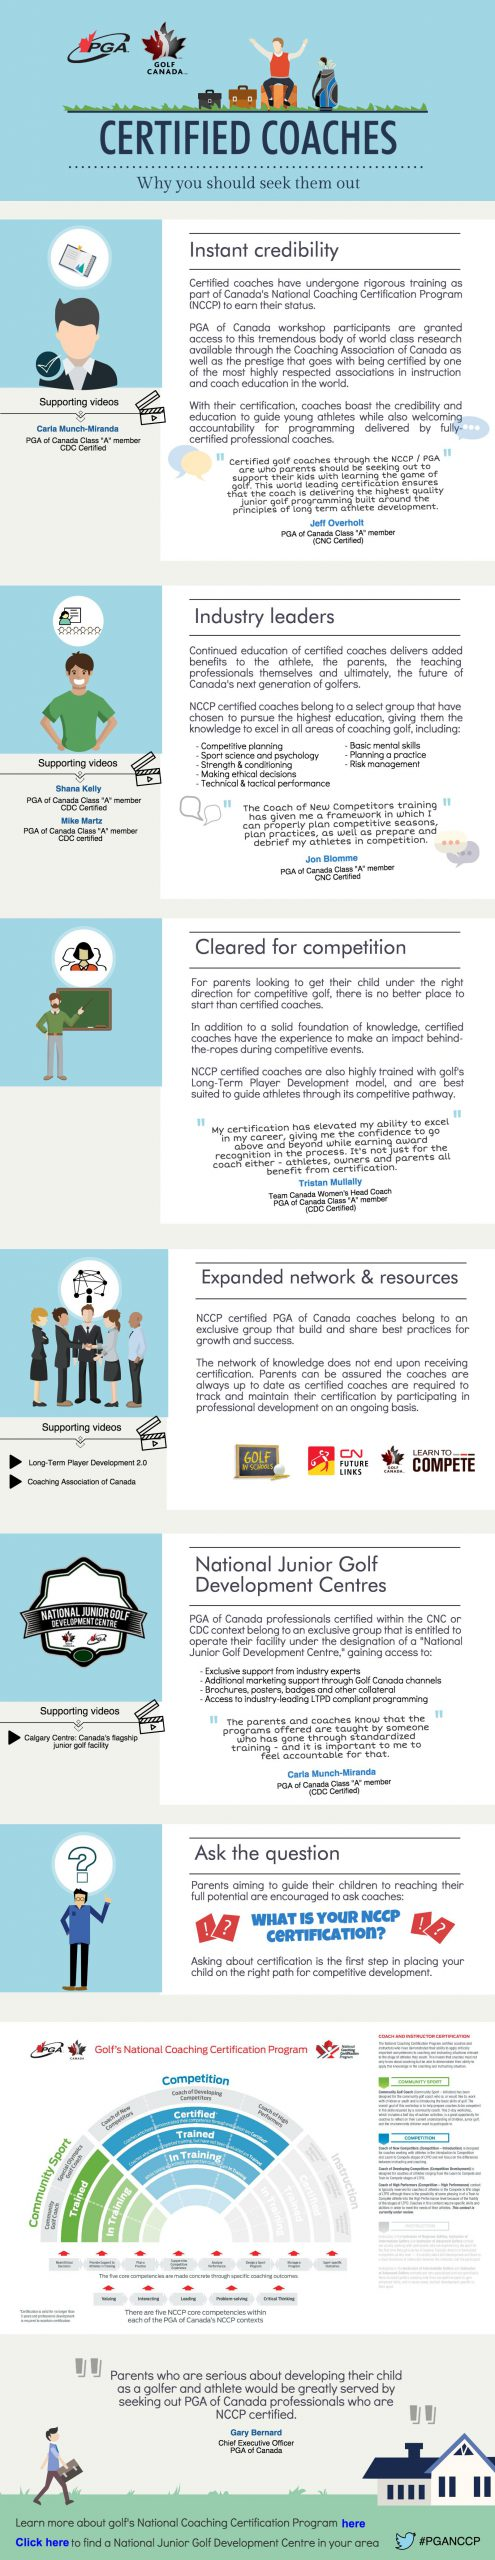 Coaching Certification Infographic